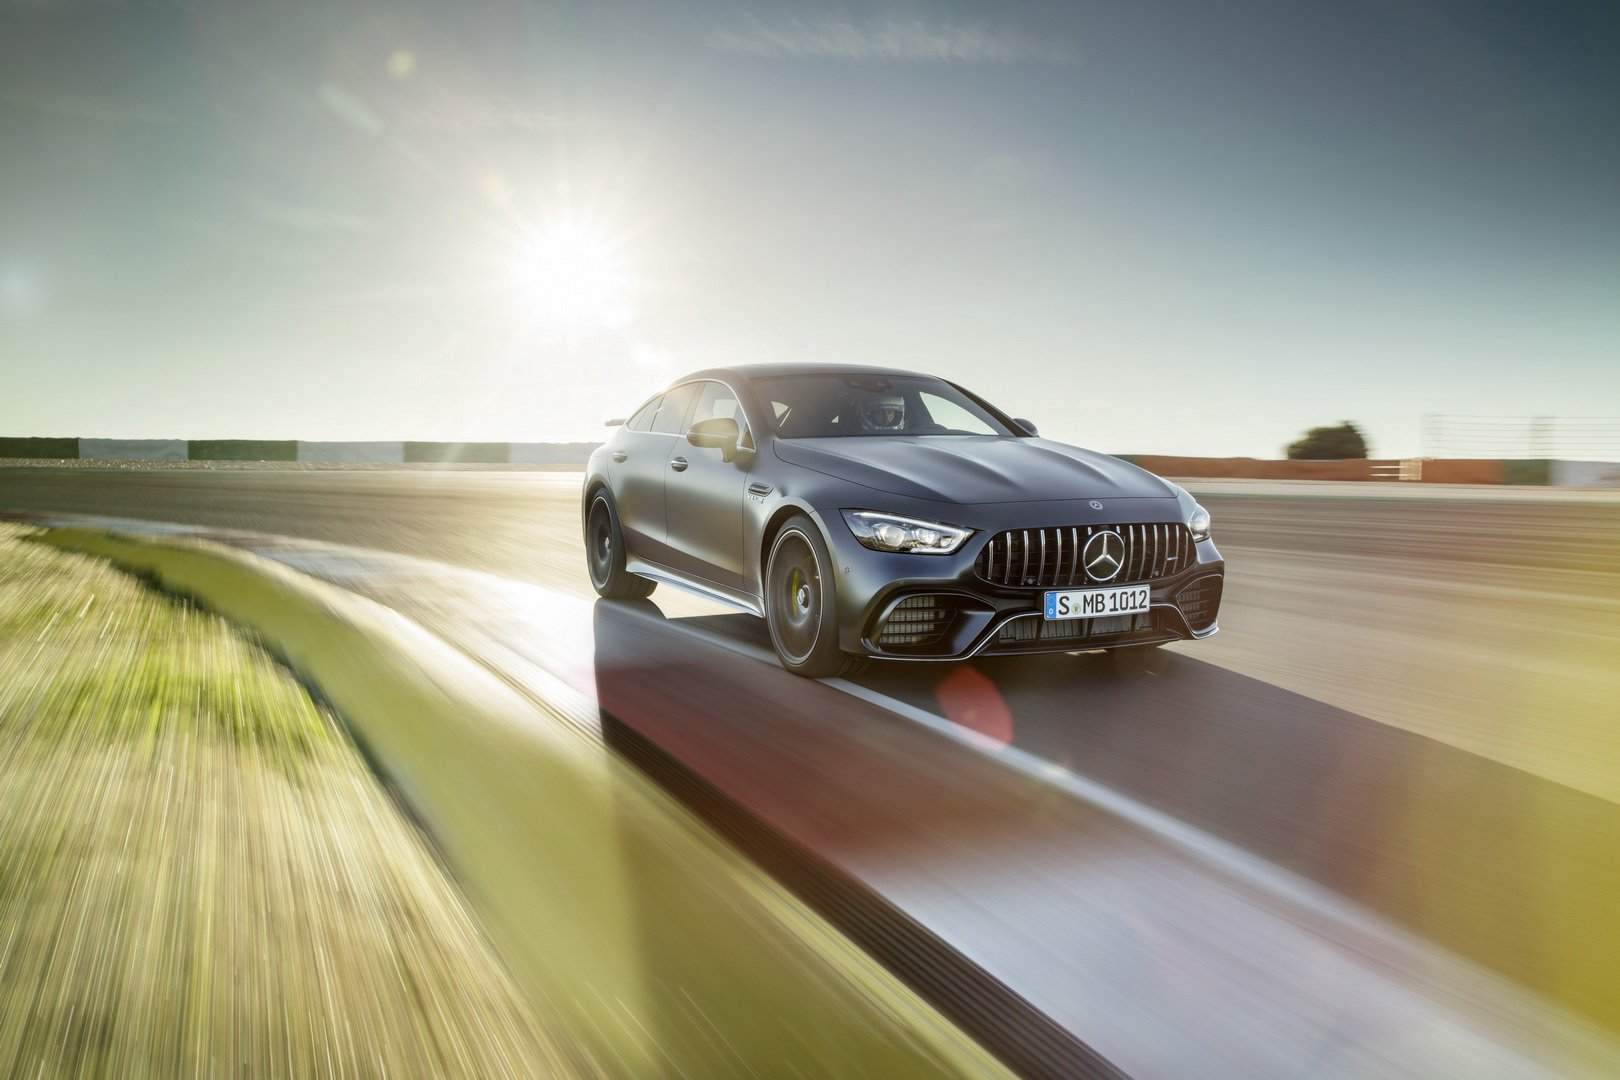 mercedes-amg-gt-4-door-coupe-lap-rap-1.jpg